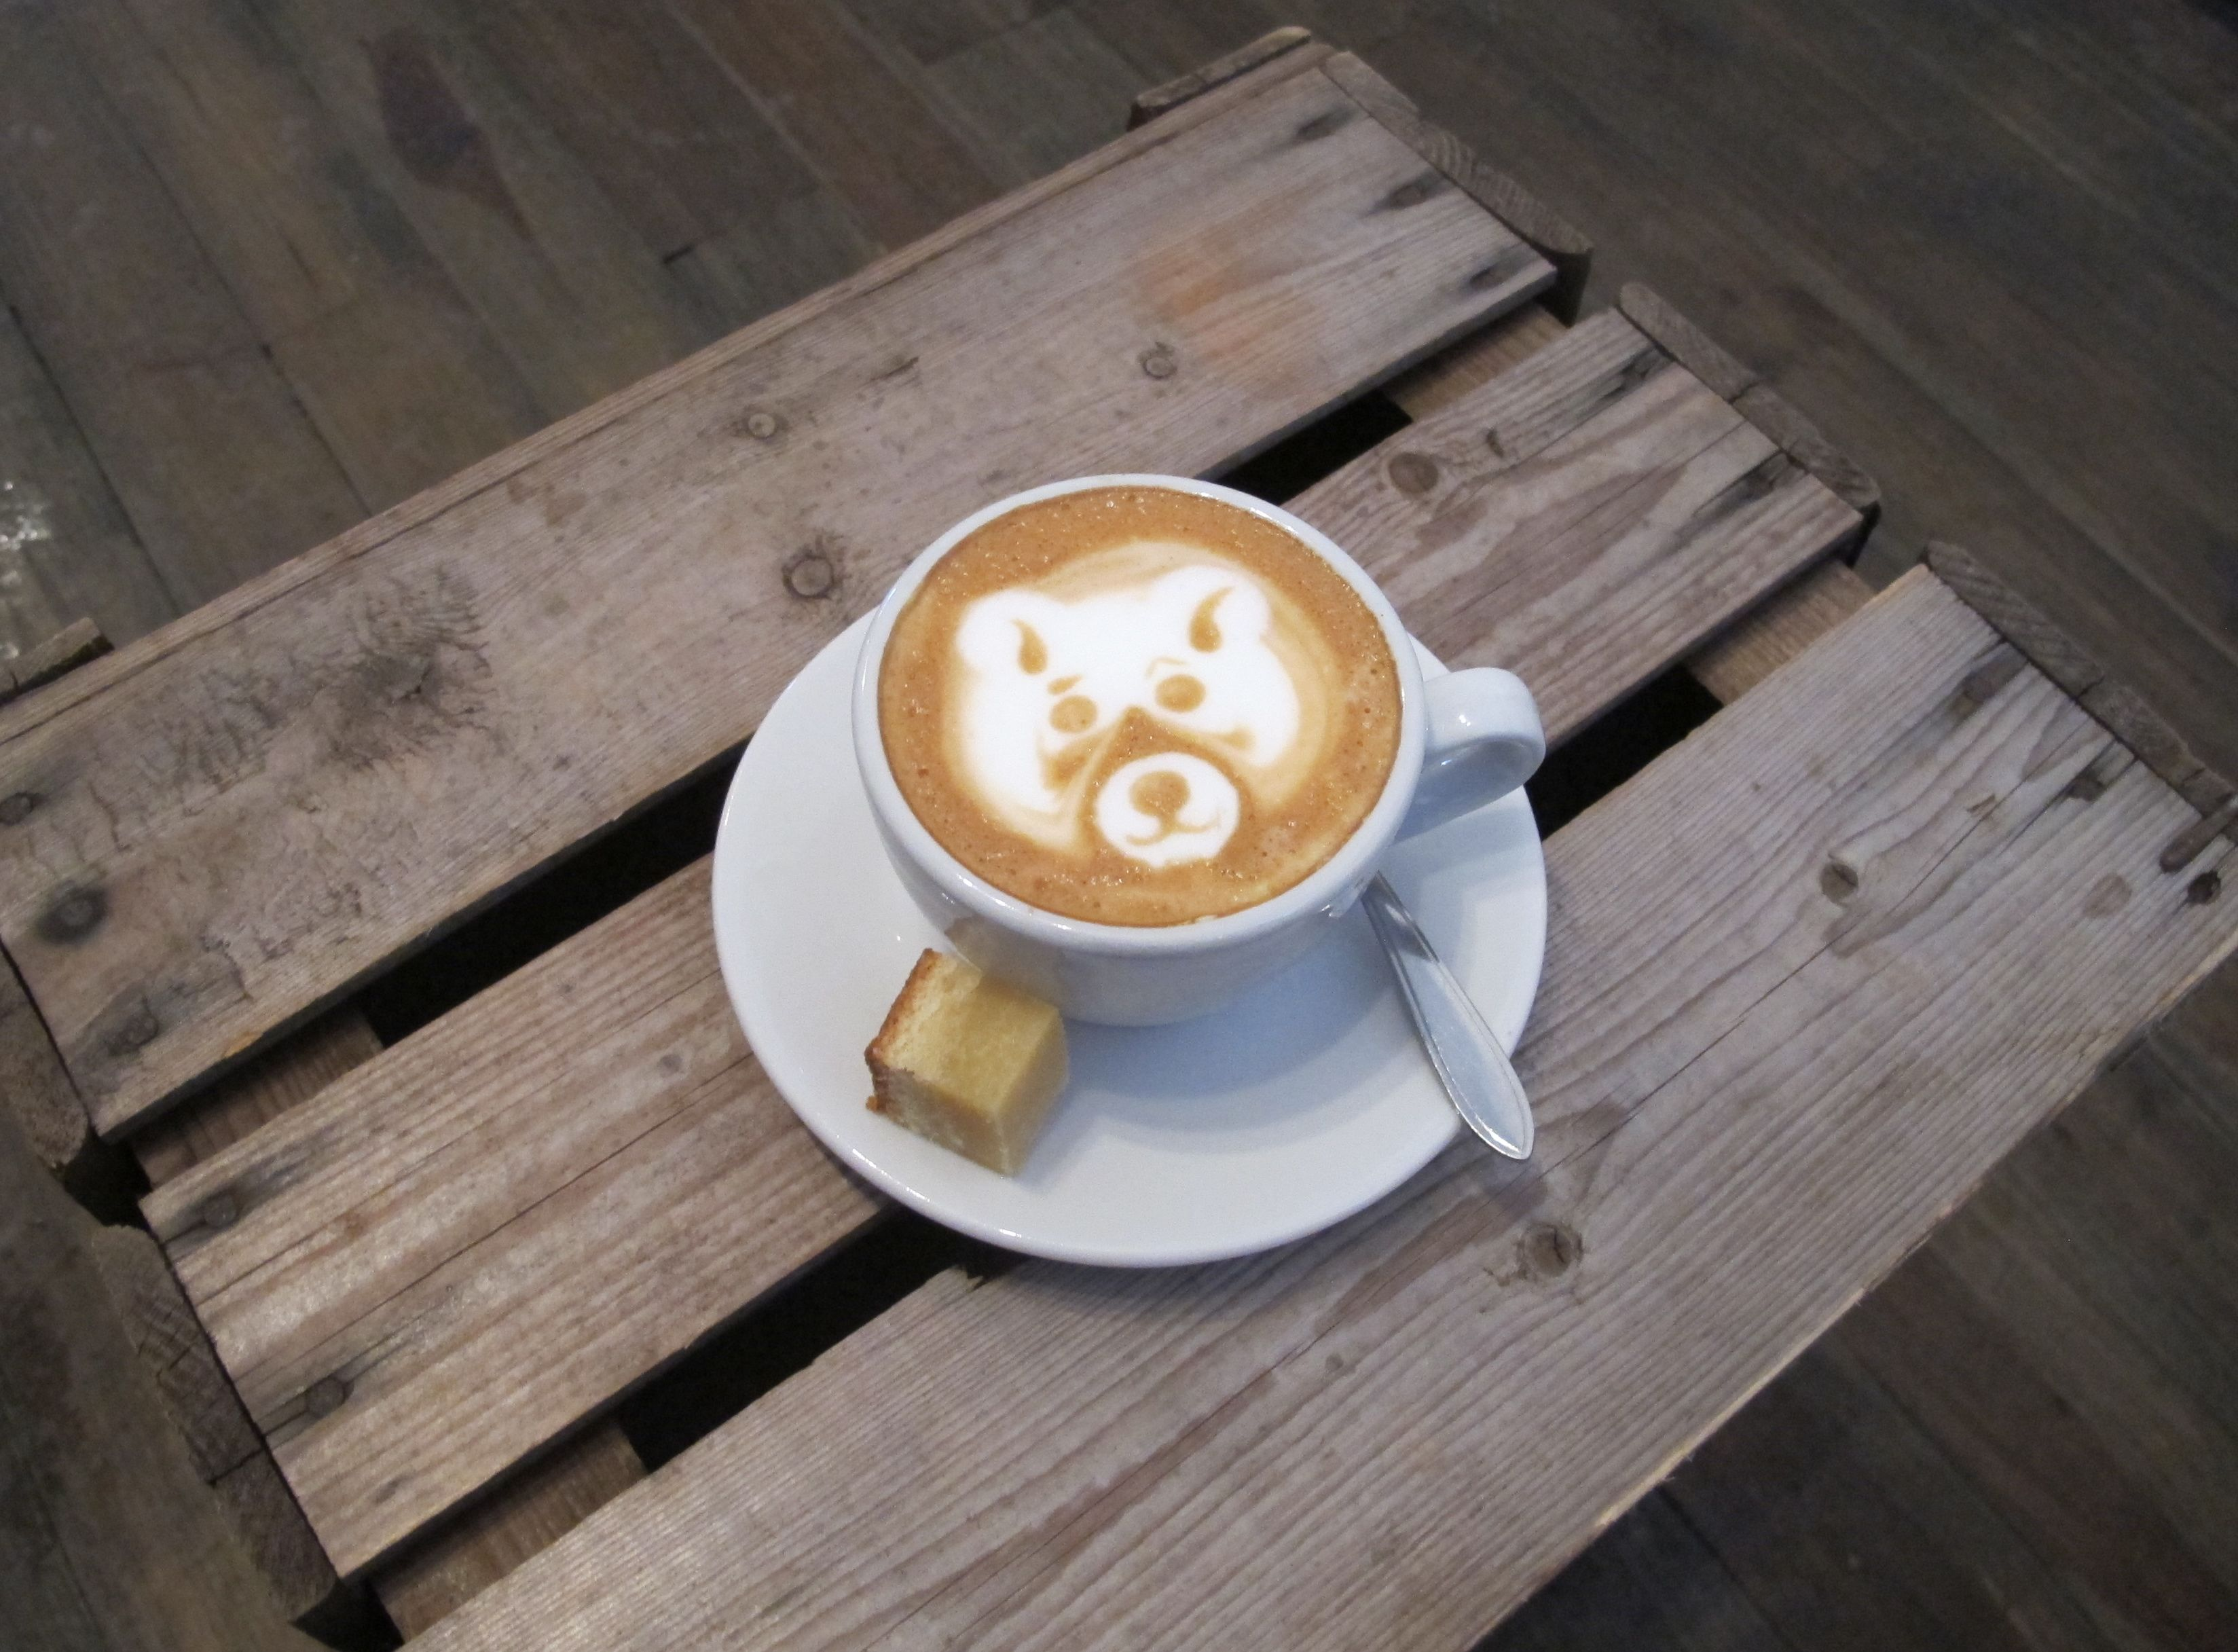 Trakteren - This great specialty coffee shop in Amsterdam's Oud West makes some pretty awesome latte art, too.